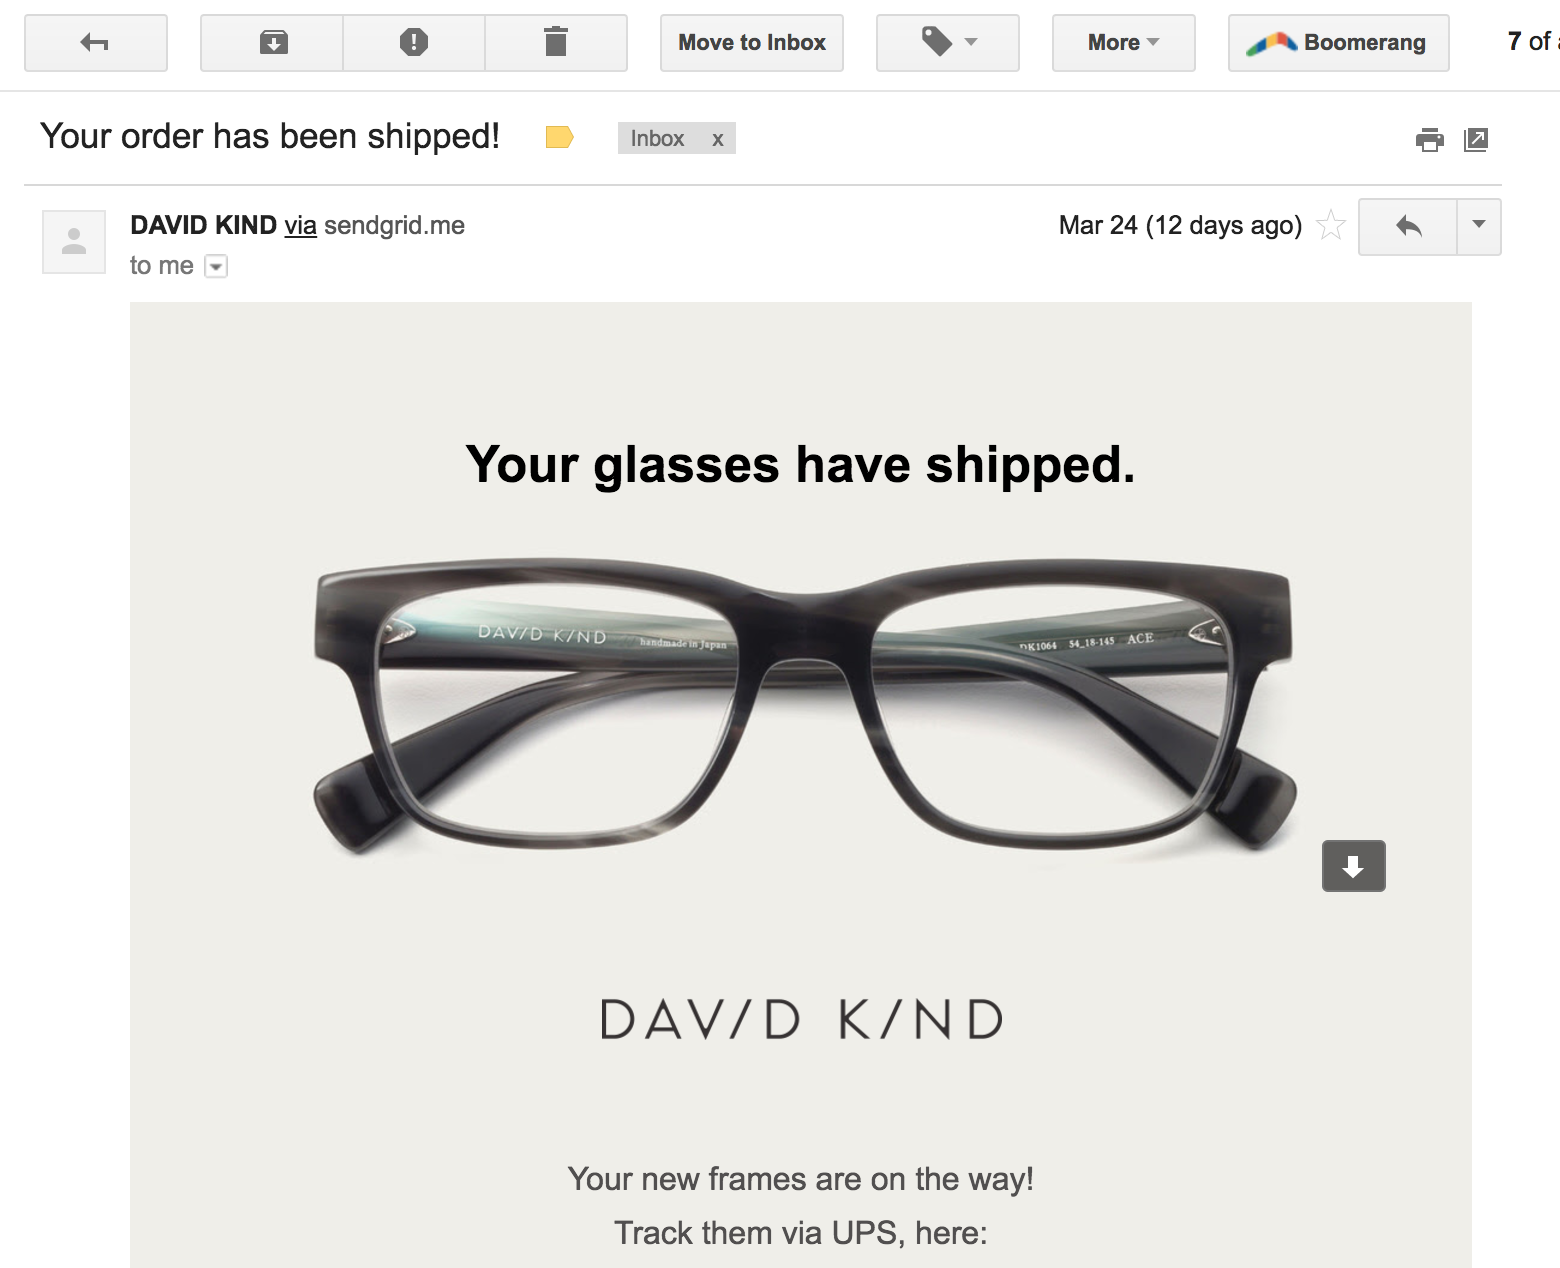 4e26969327 It shipped just 4 days later. And arrived just 3 days after that. So it  took just one week to have my finished glasses in hand.